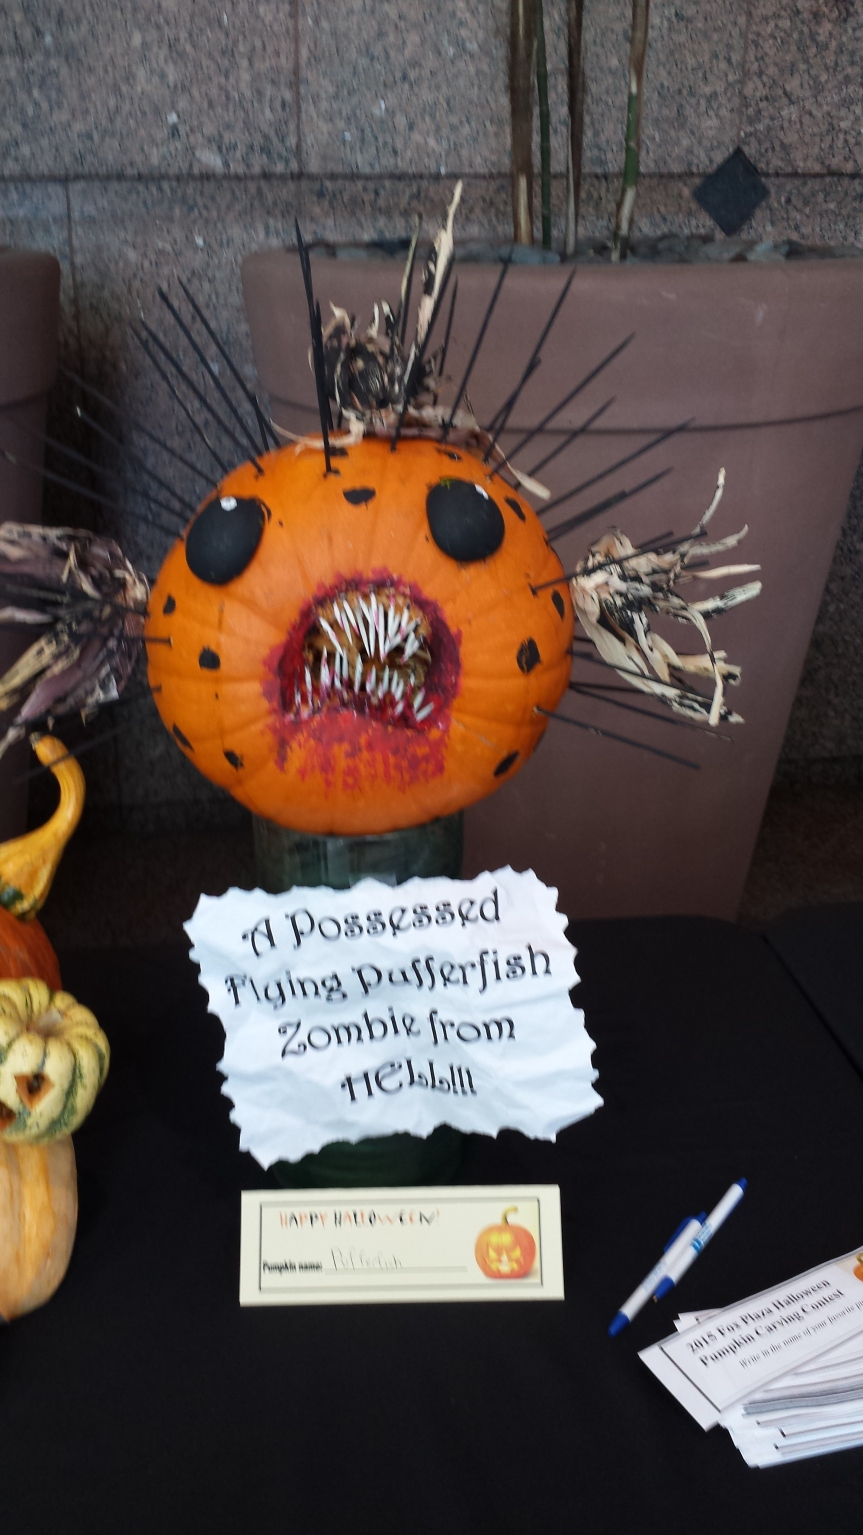 Entries from a local Pumpkin carving contest